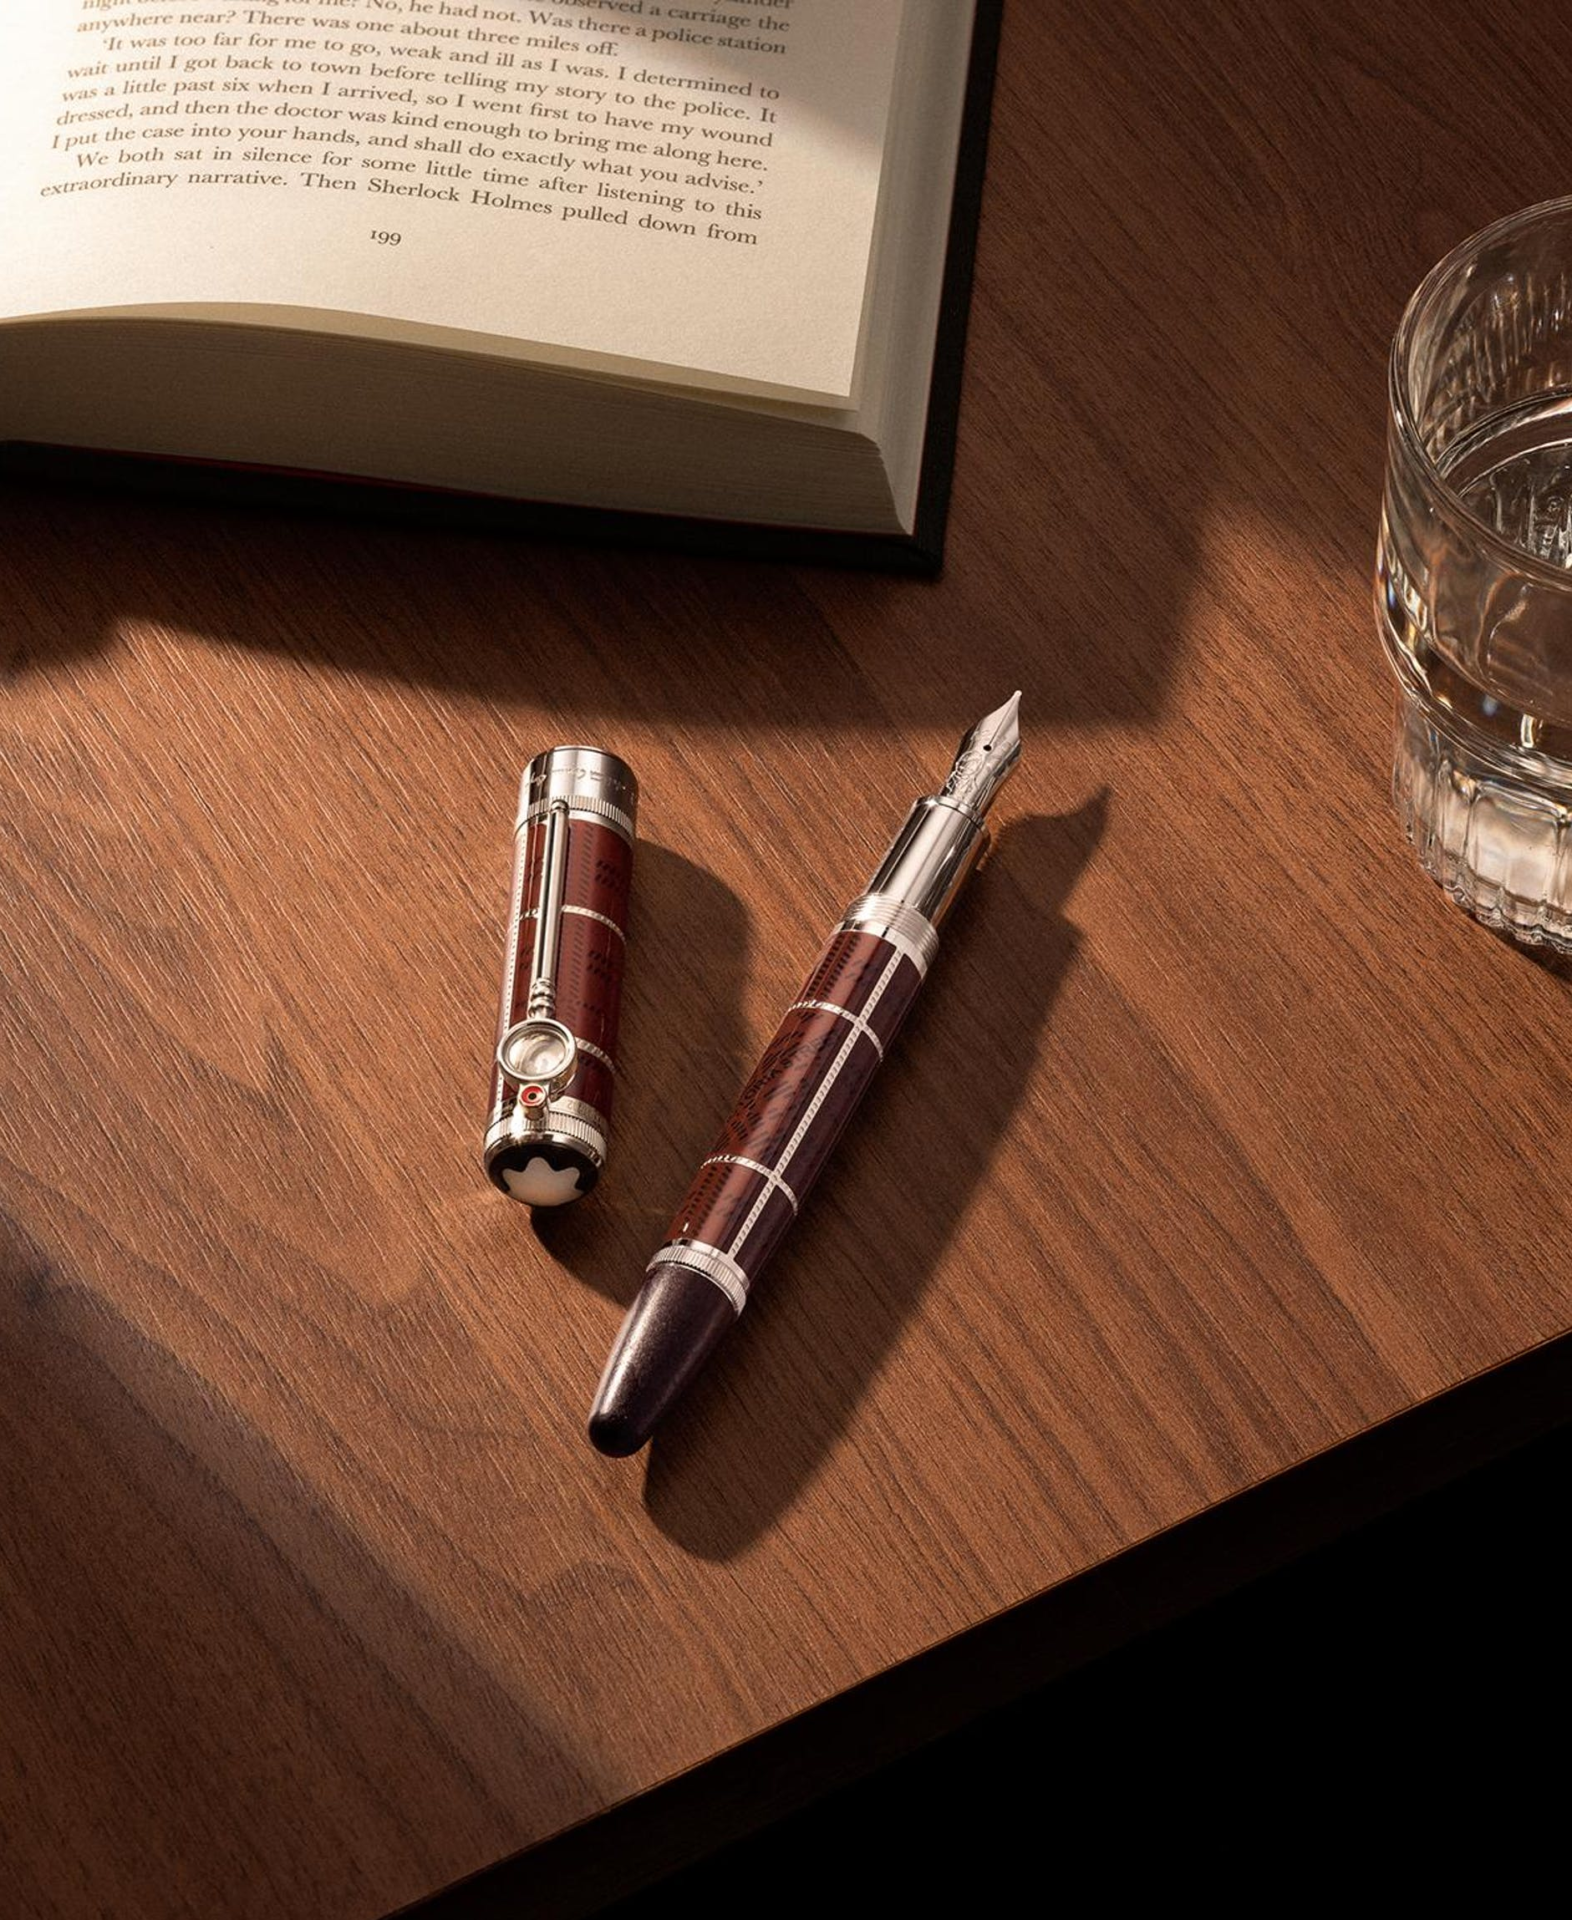 Stylo plume Writers Edition hommage à Arthur Conan Doyle, Limited Edition 1902, Montblanc